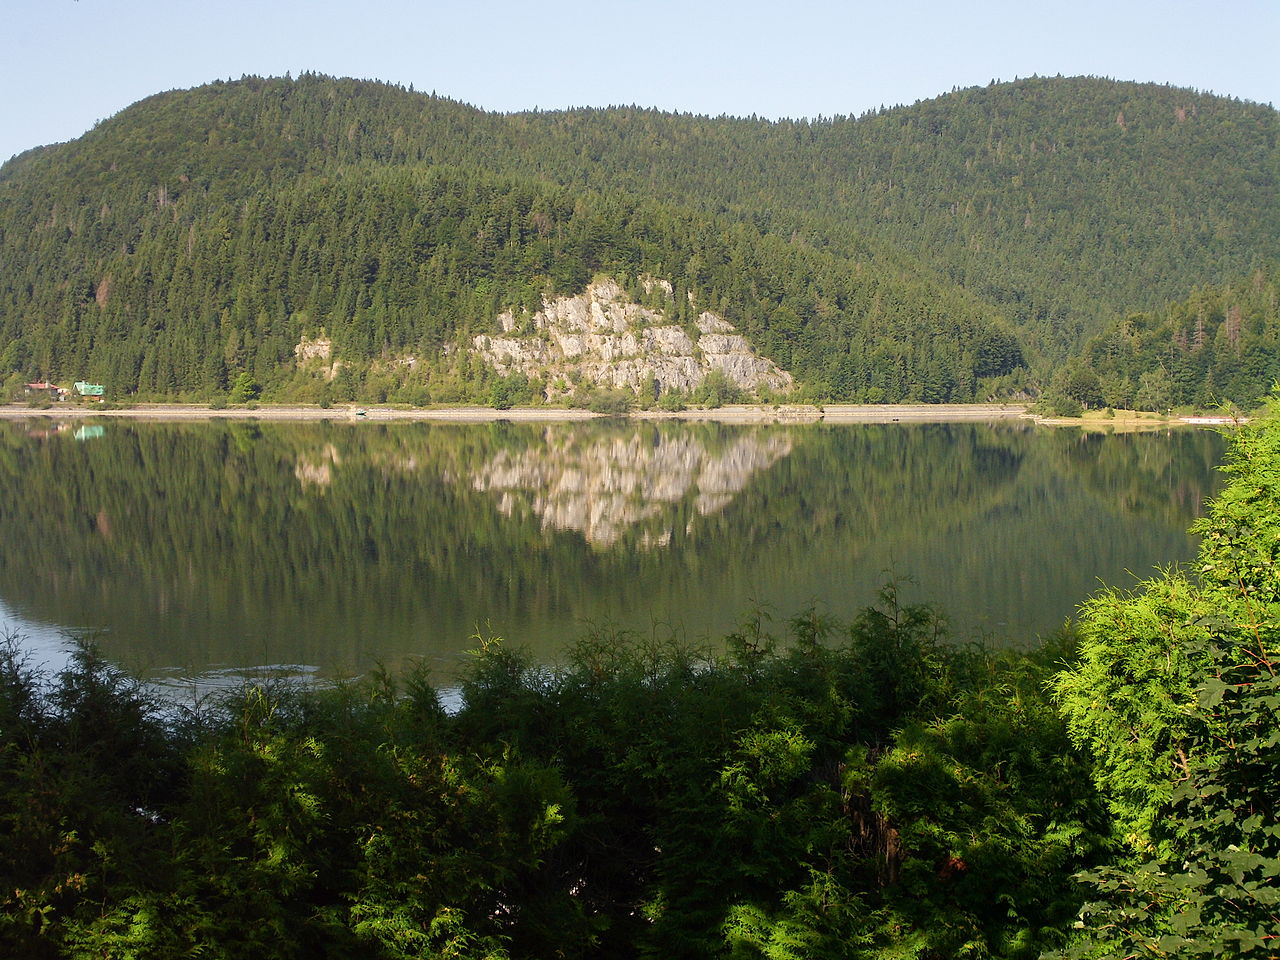 "[lnk url=""https://upload.wikimedia.org/wikipedia/commons/0/03/Palcmanska_Masa_rock.JPG""]Zdroj: Wikimedia Commons, Autor: Jan Pešula[/lnk]"